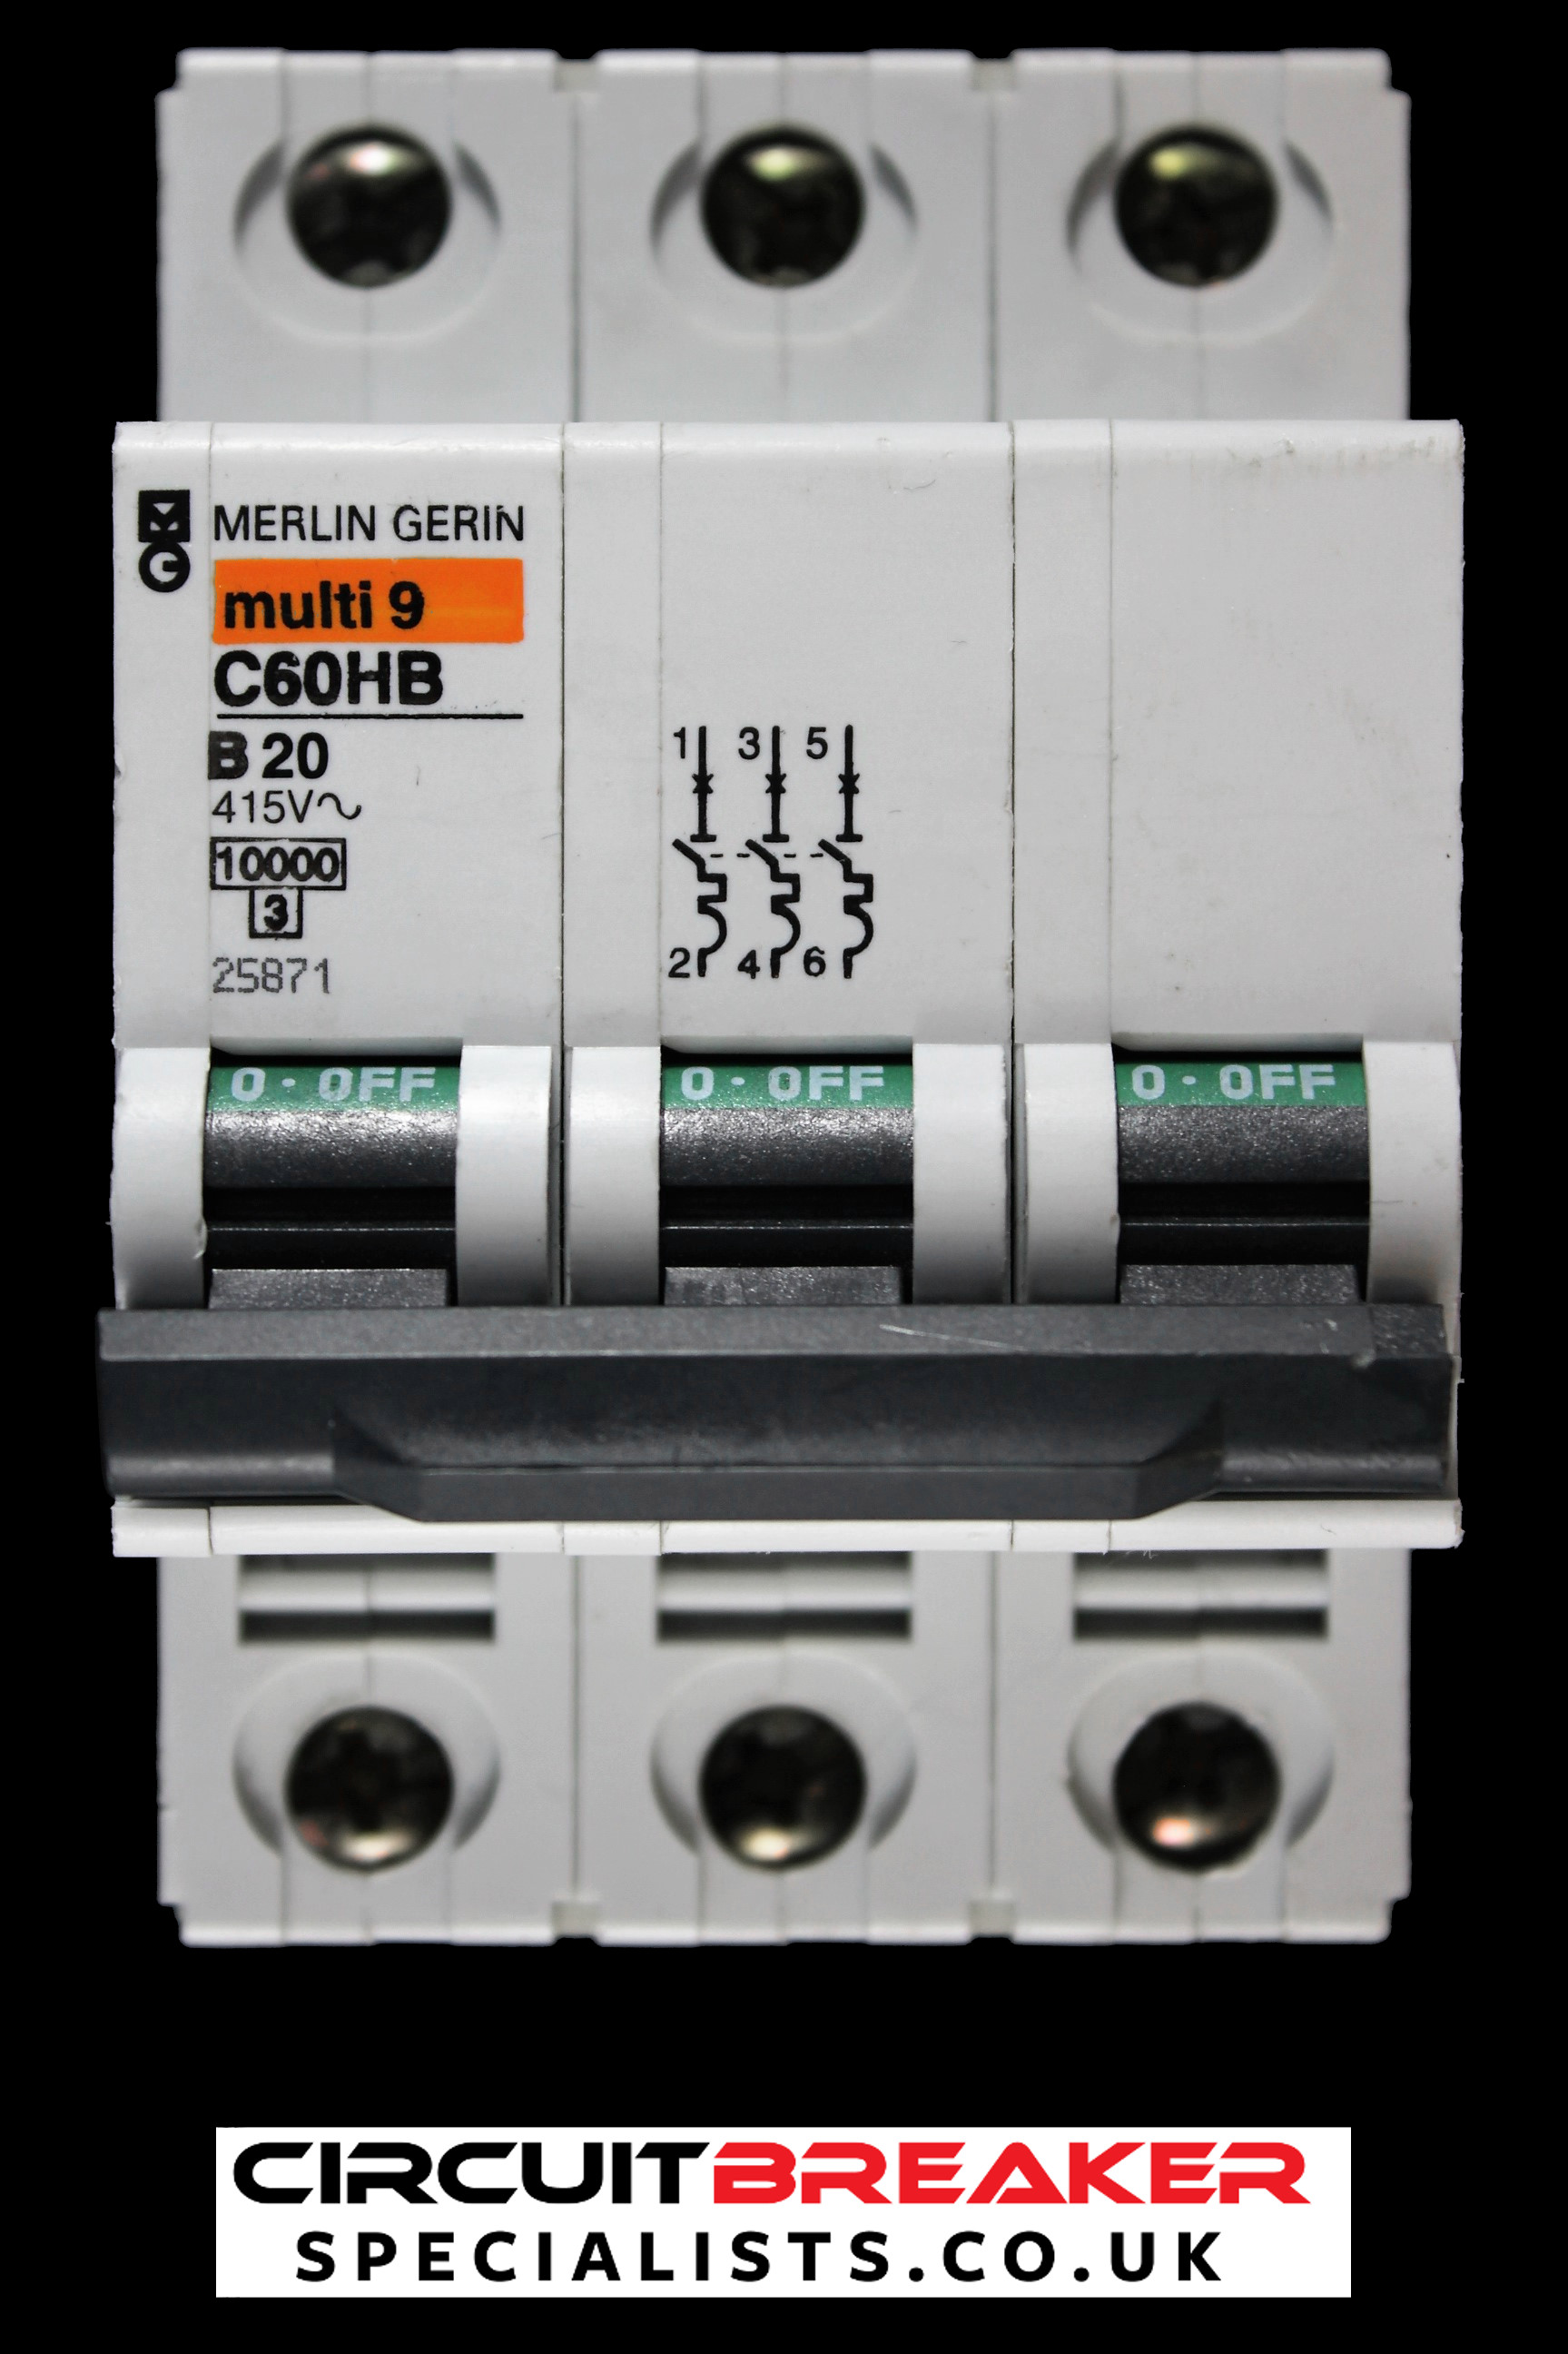 MERLIN GERIN 20 AMP TYPE B 10kA TRIPLE POLE MCB CIRCUIT BREAKER C60HB 25871